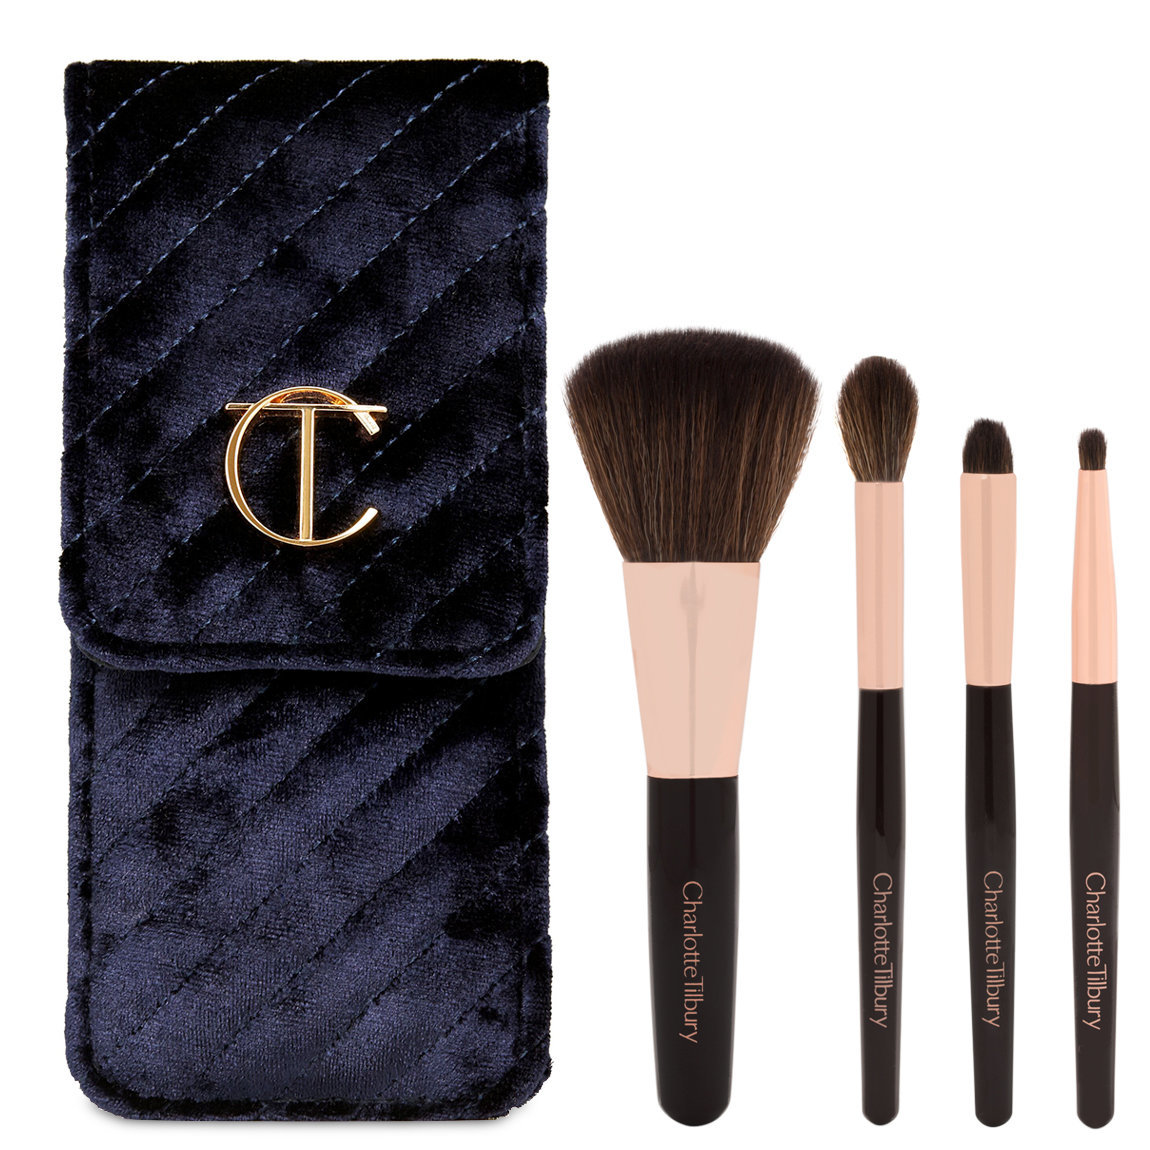 Charlotte Tilbury 3rd Edition Magical Mini Brush Set product swatch.